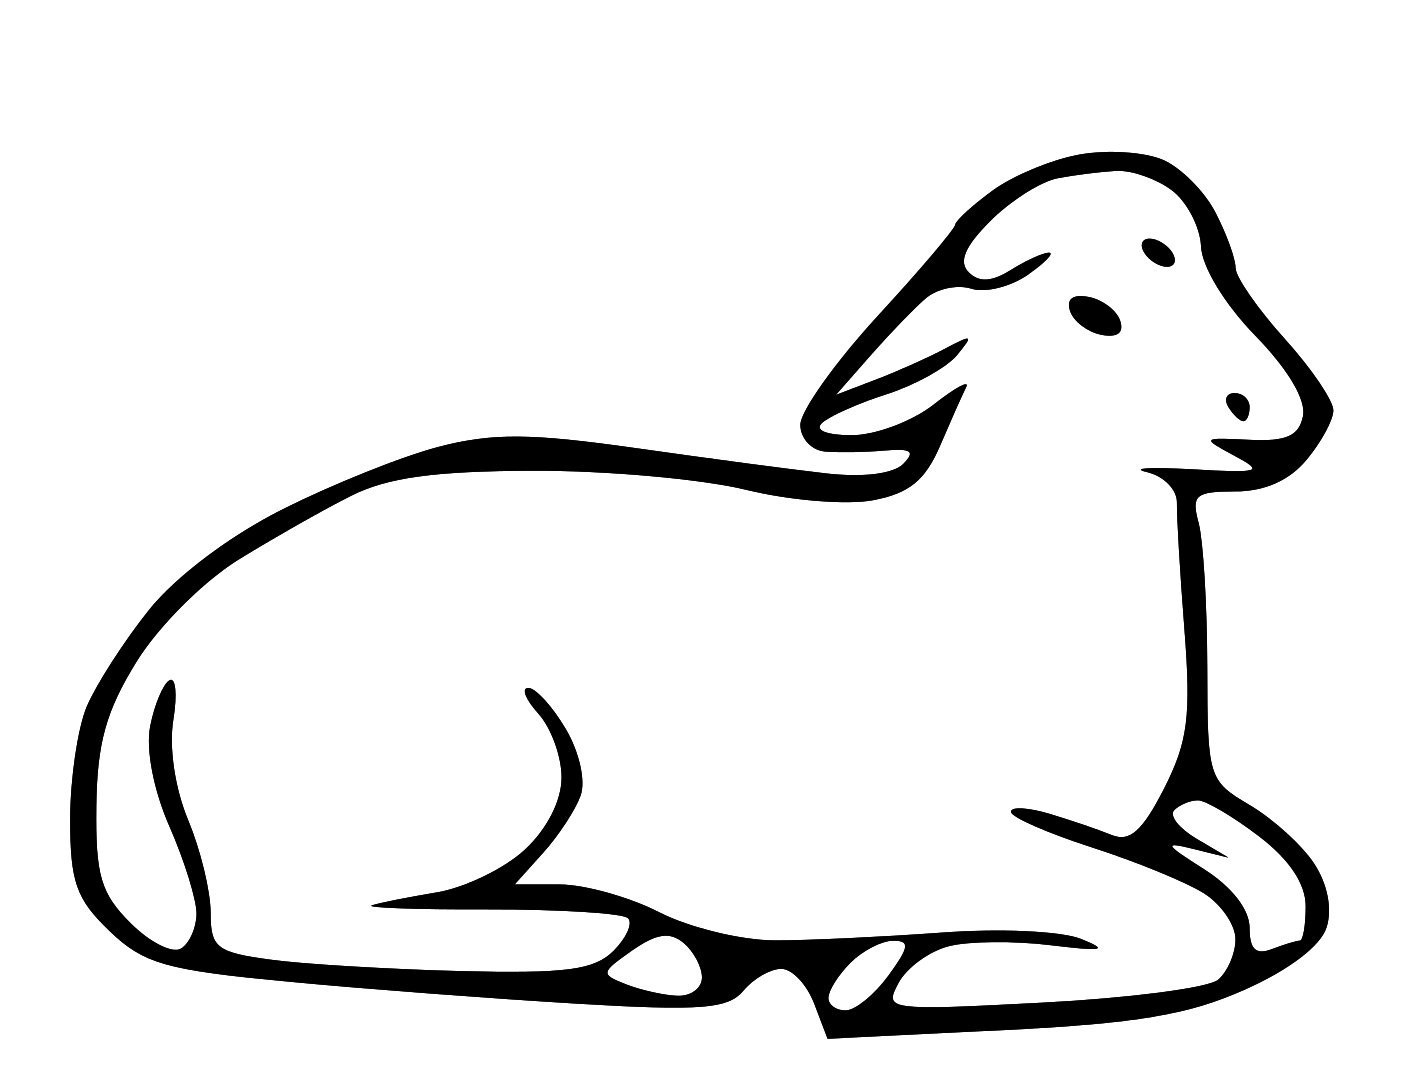 Lion and outline clip. Lamb clipart religious